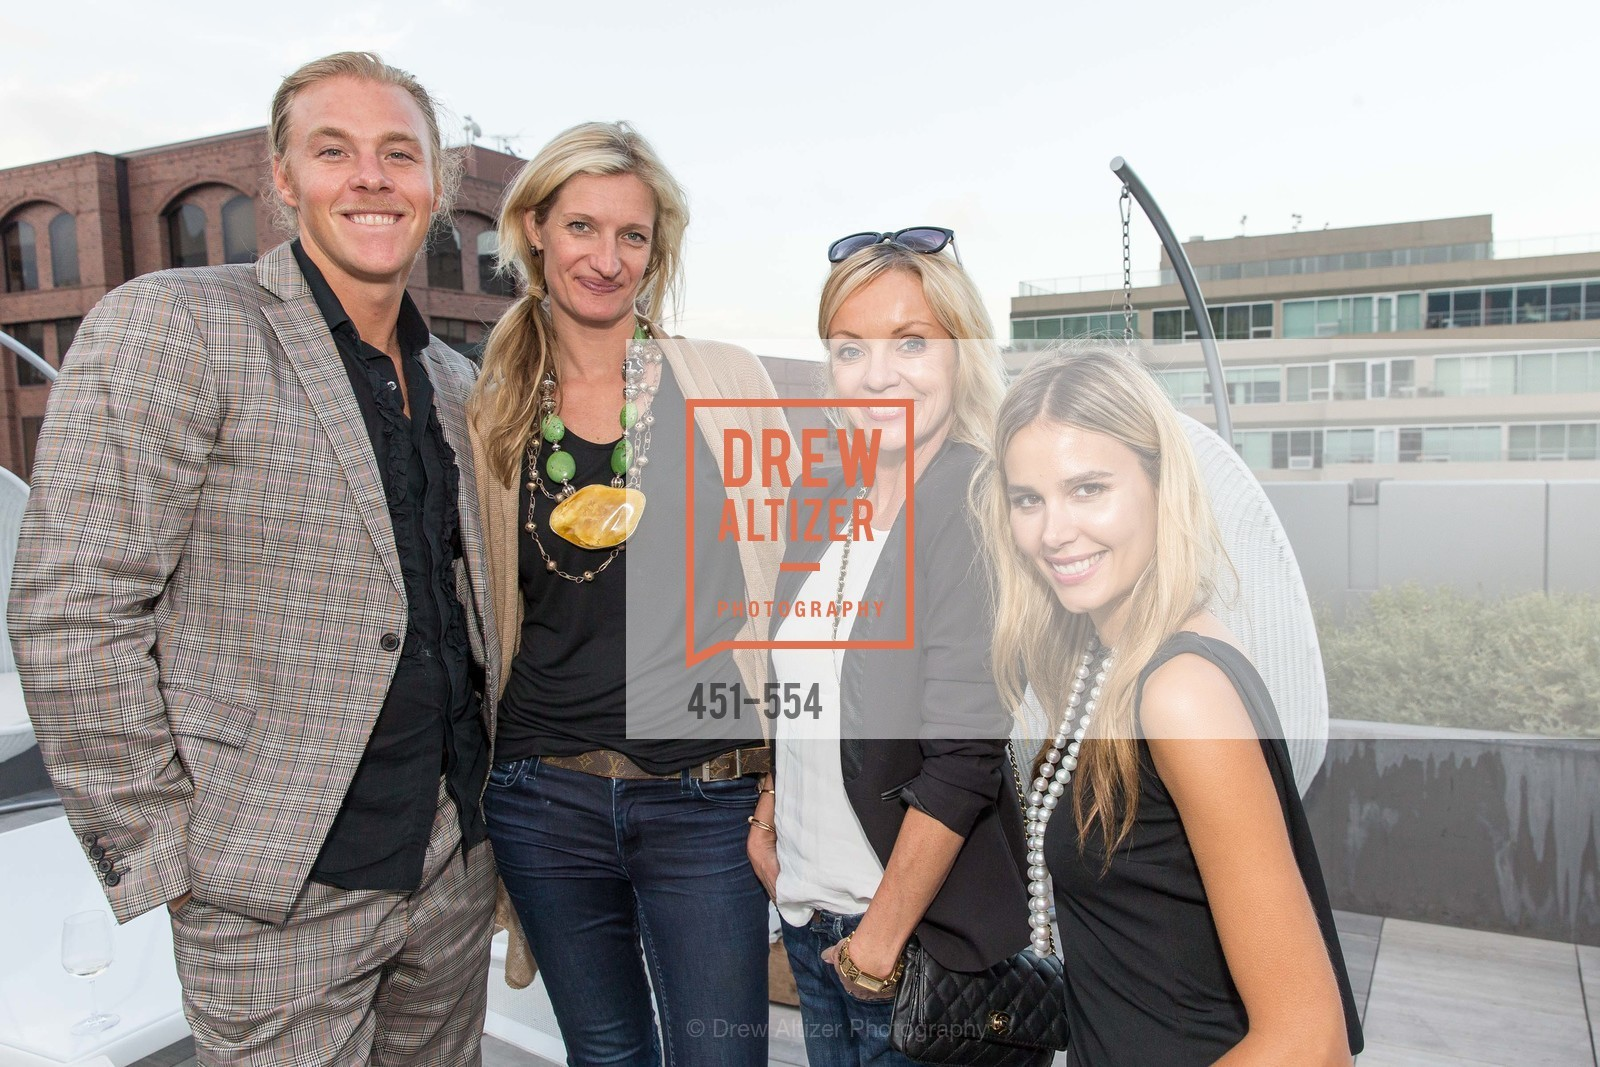 Will Hanigan, Noelle Nixon, Angie Silvy, Iskra Galic, CMH HELI SKIING Event, US, September 4th, 2014,Drew Altizer, Drew Altizer Photography, full-service event agency, private events, San Francisco photographer, photographer California